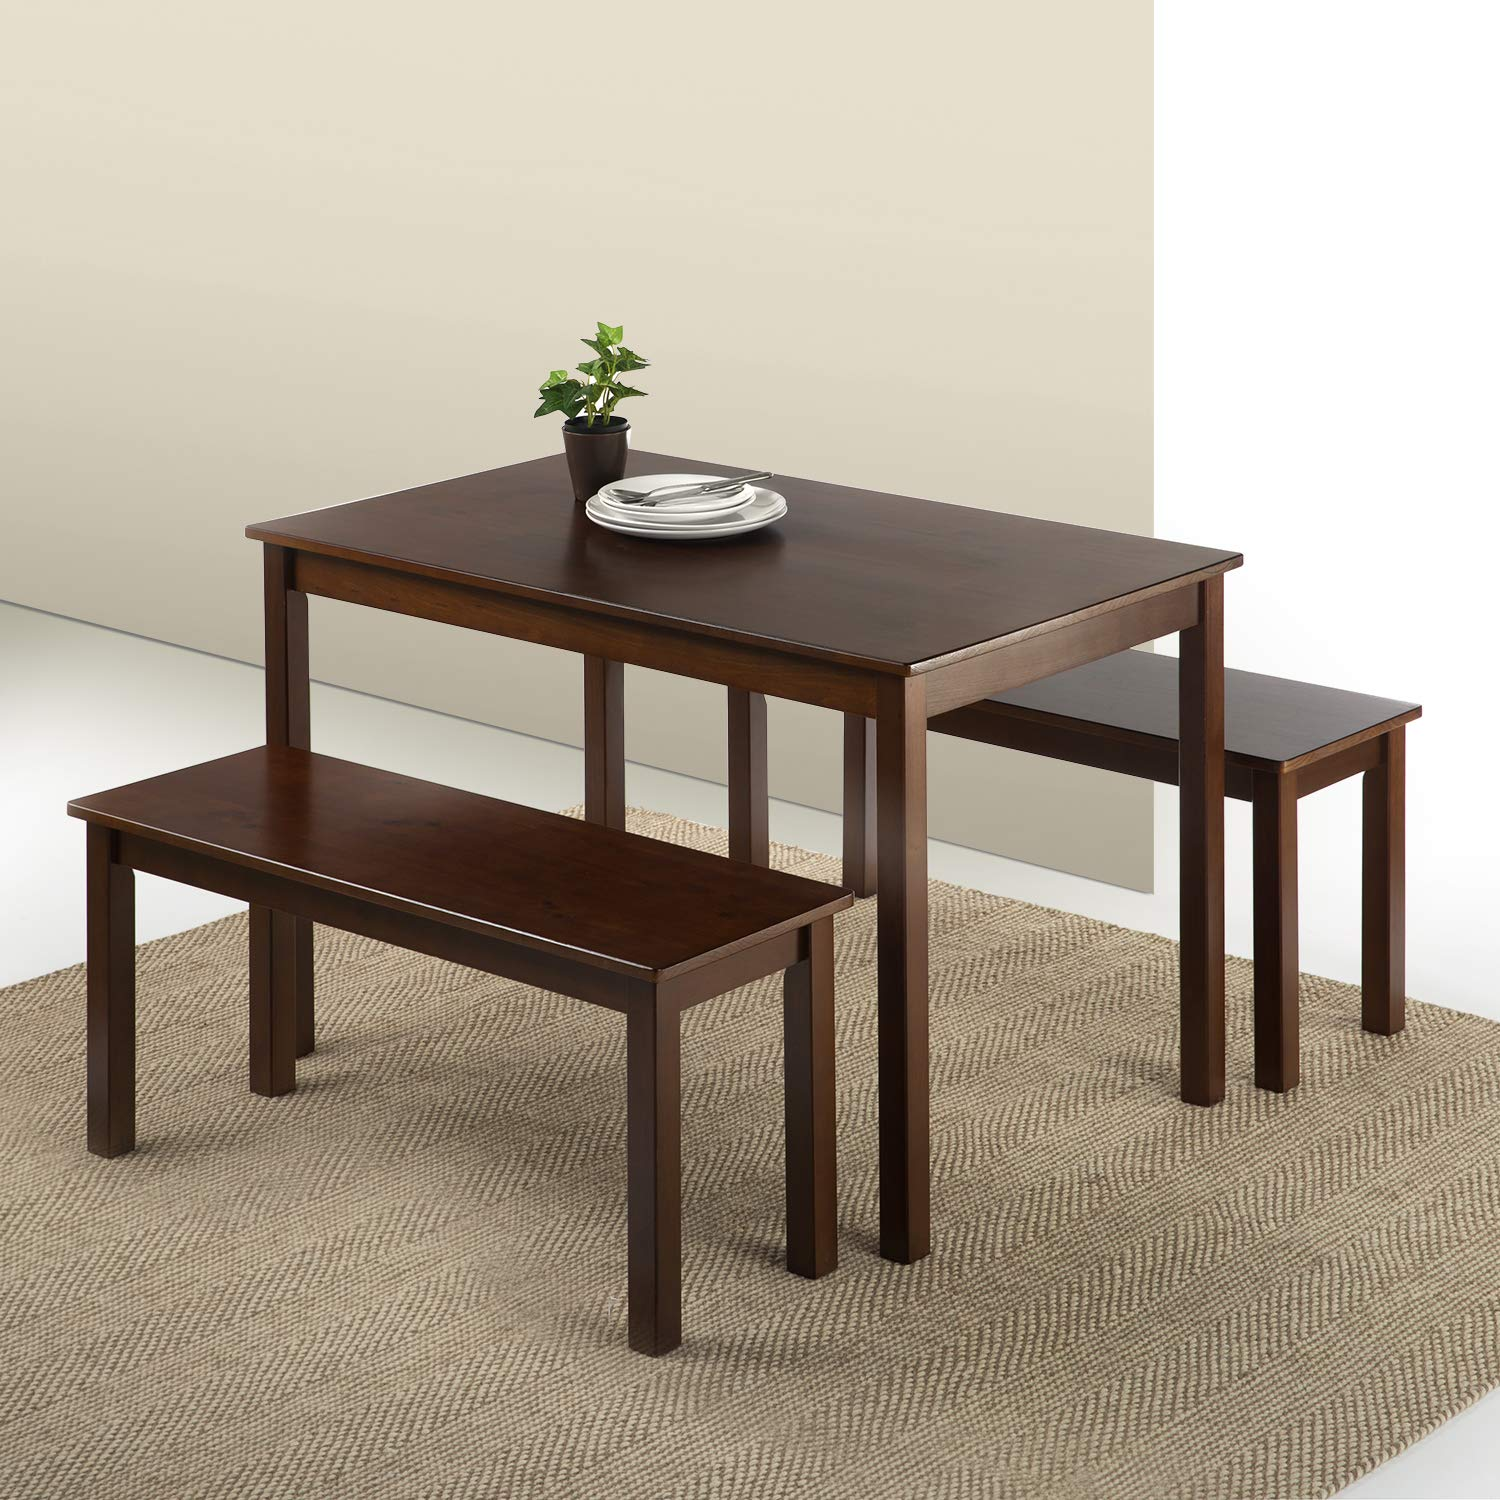 Amazon Com Zinus Espresso Wood Dining Table With 2 Benches 3